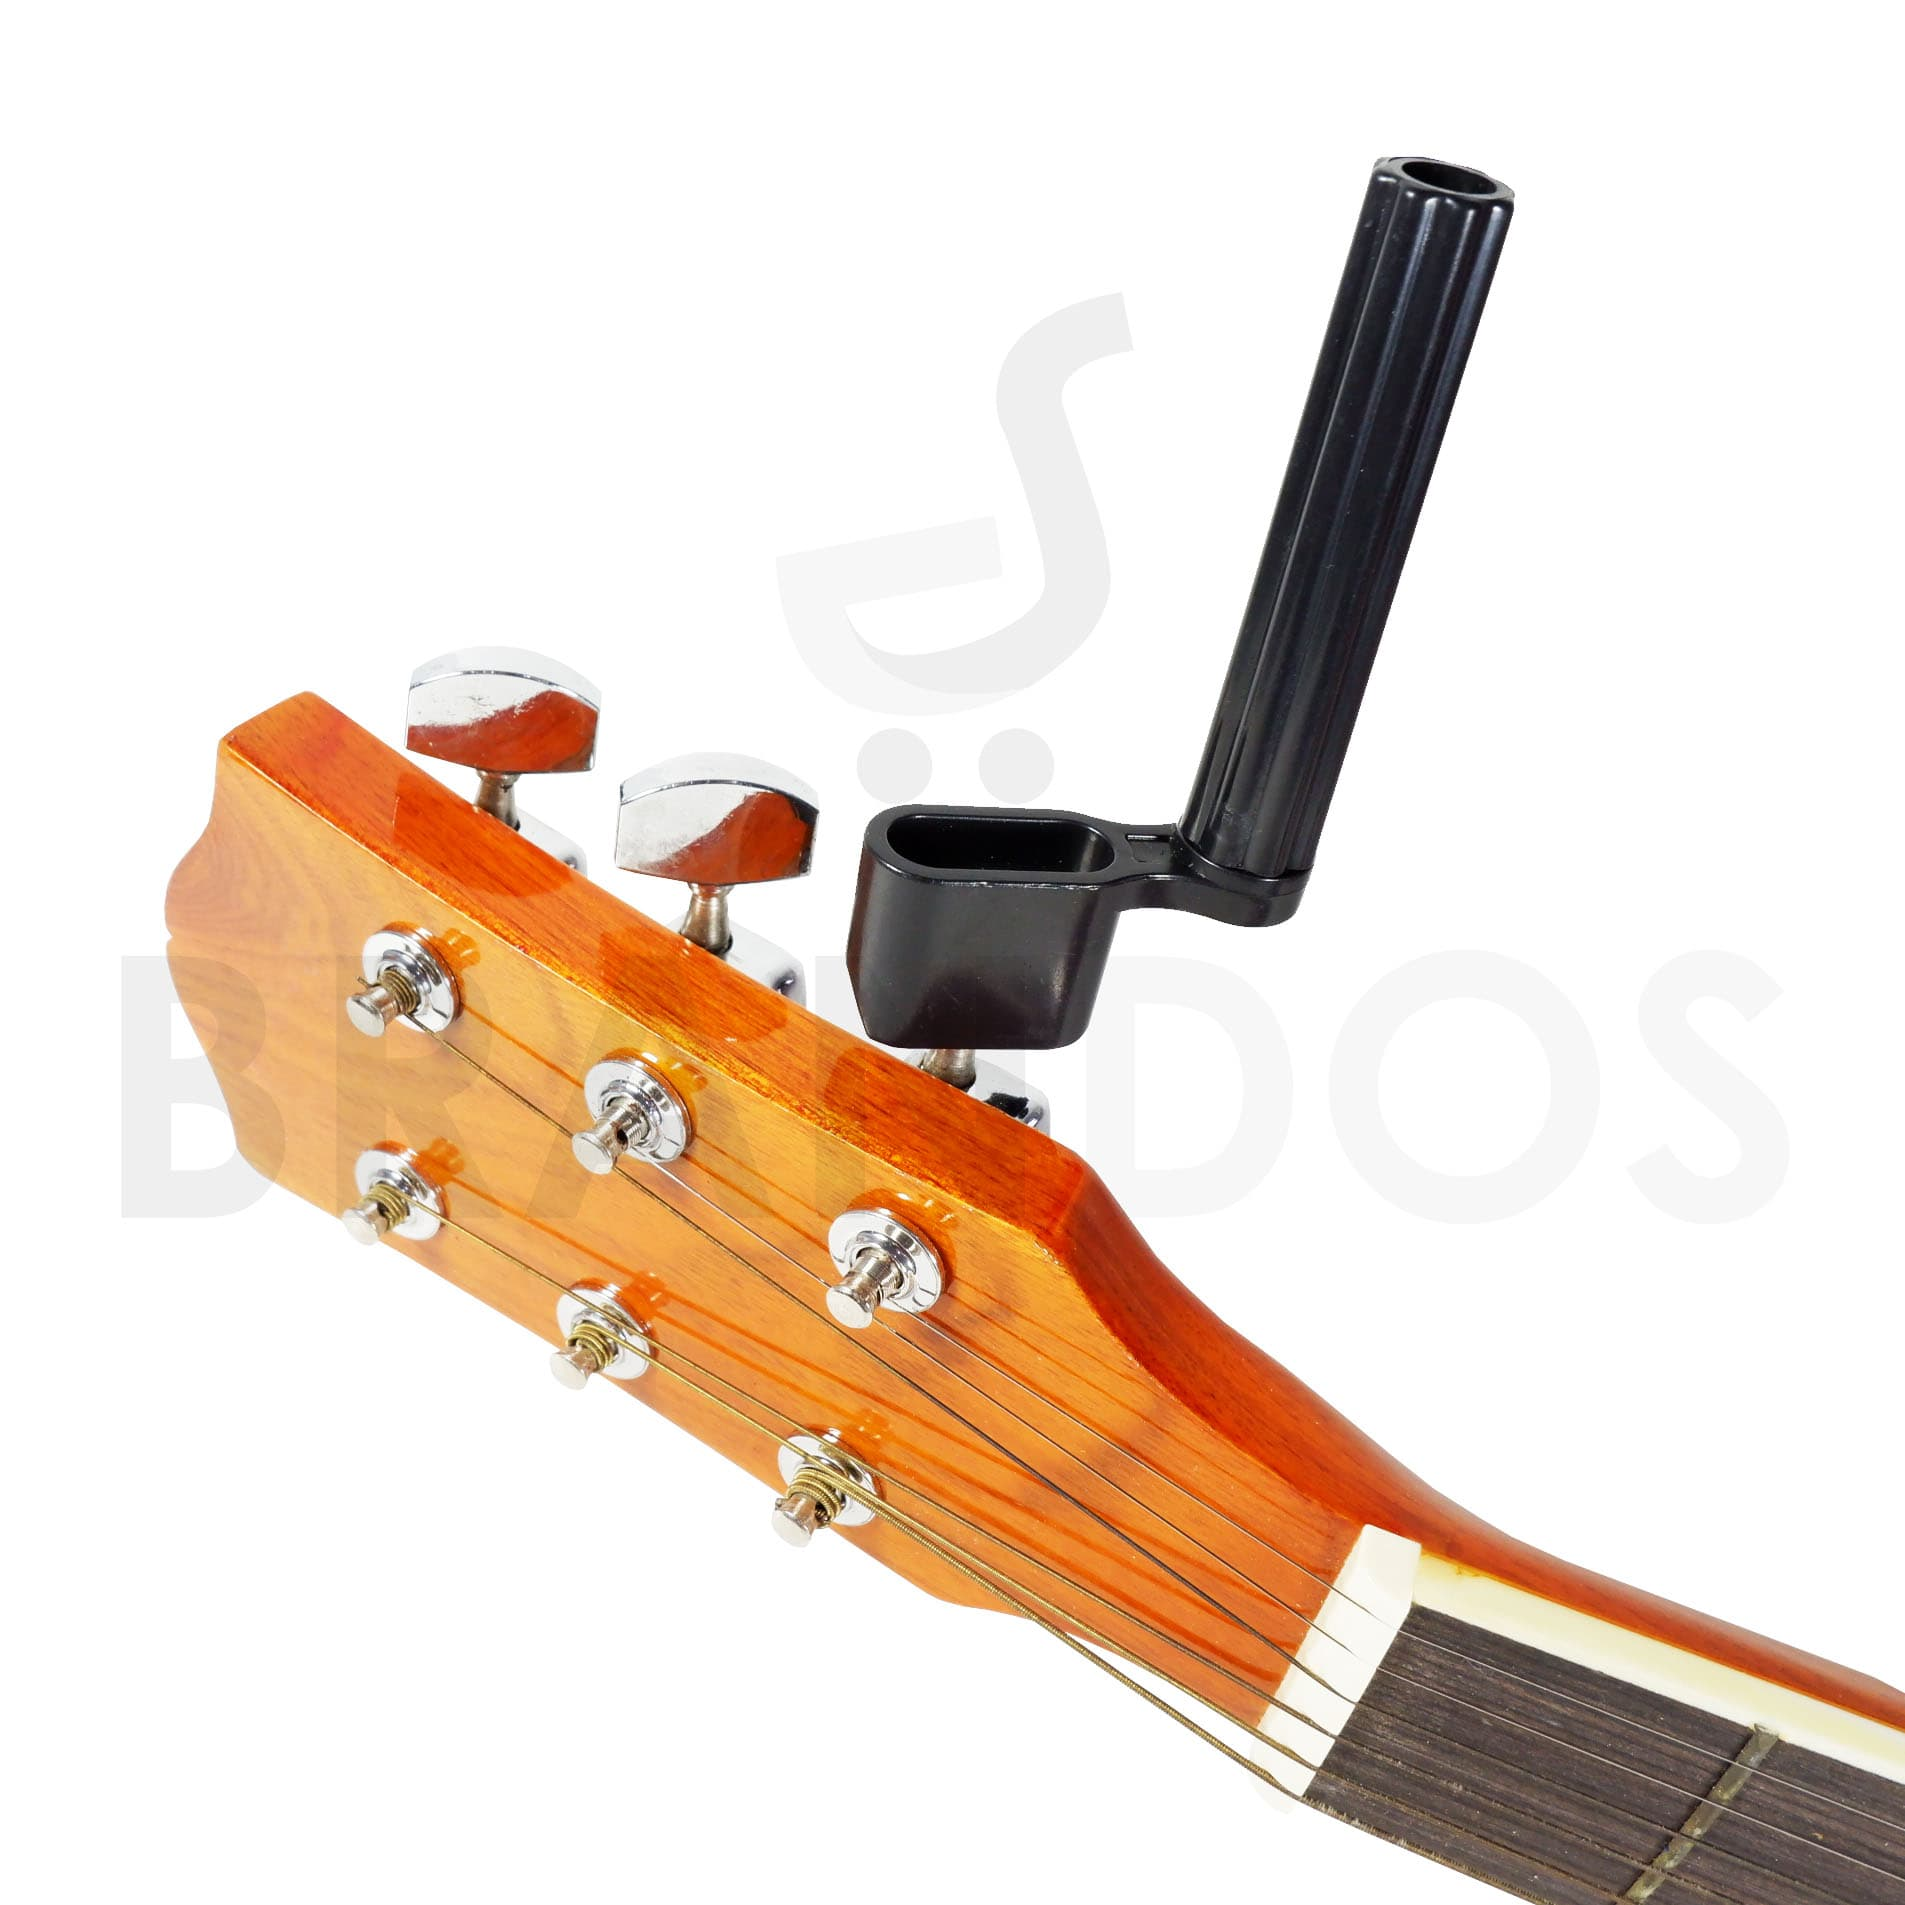 String Winder / Alat Pemutar Dryer Senar Gitar Peg Winder Pin Bridge - Blanja.com